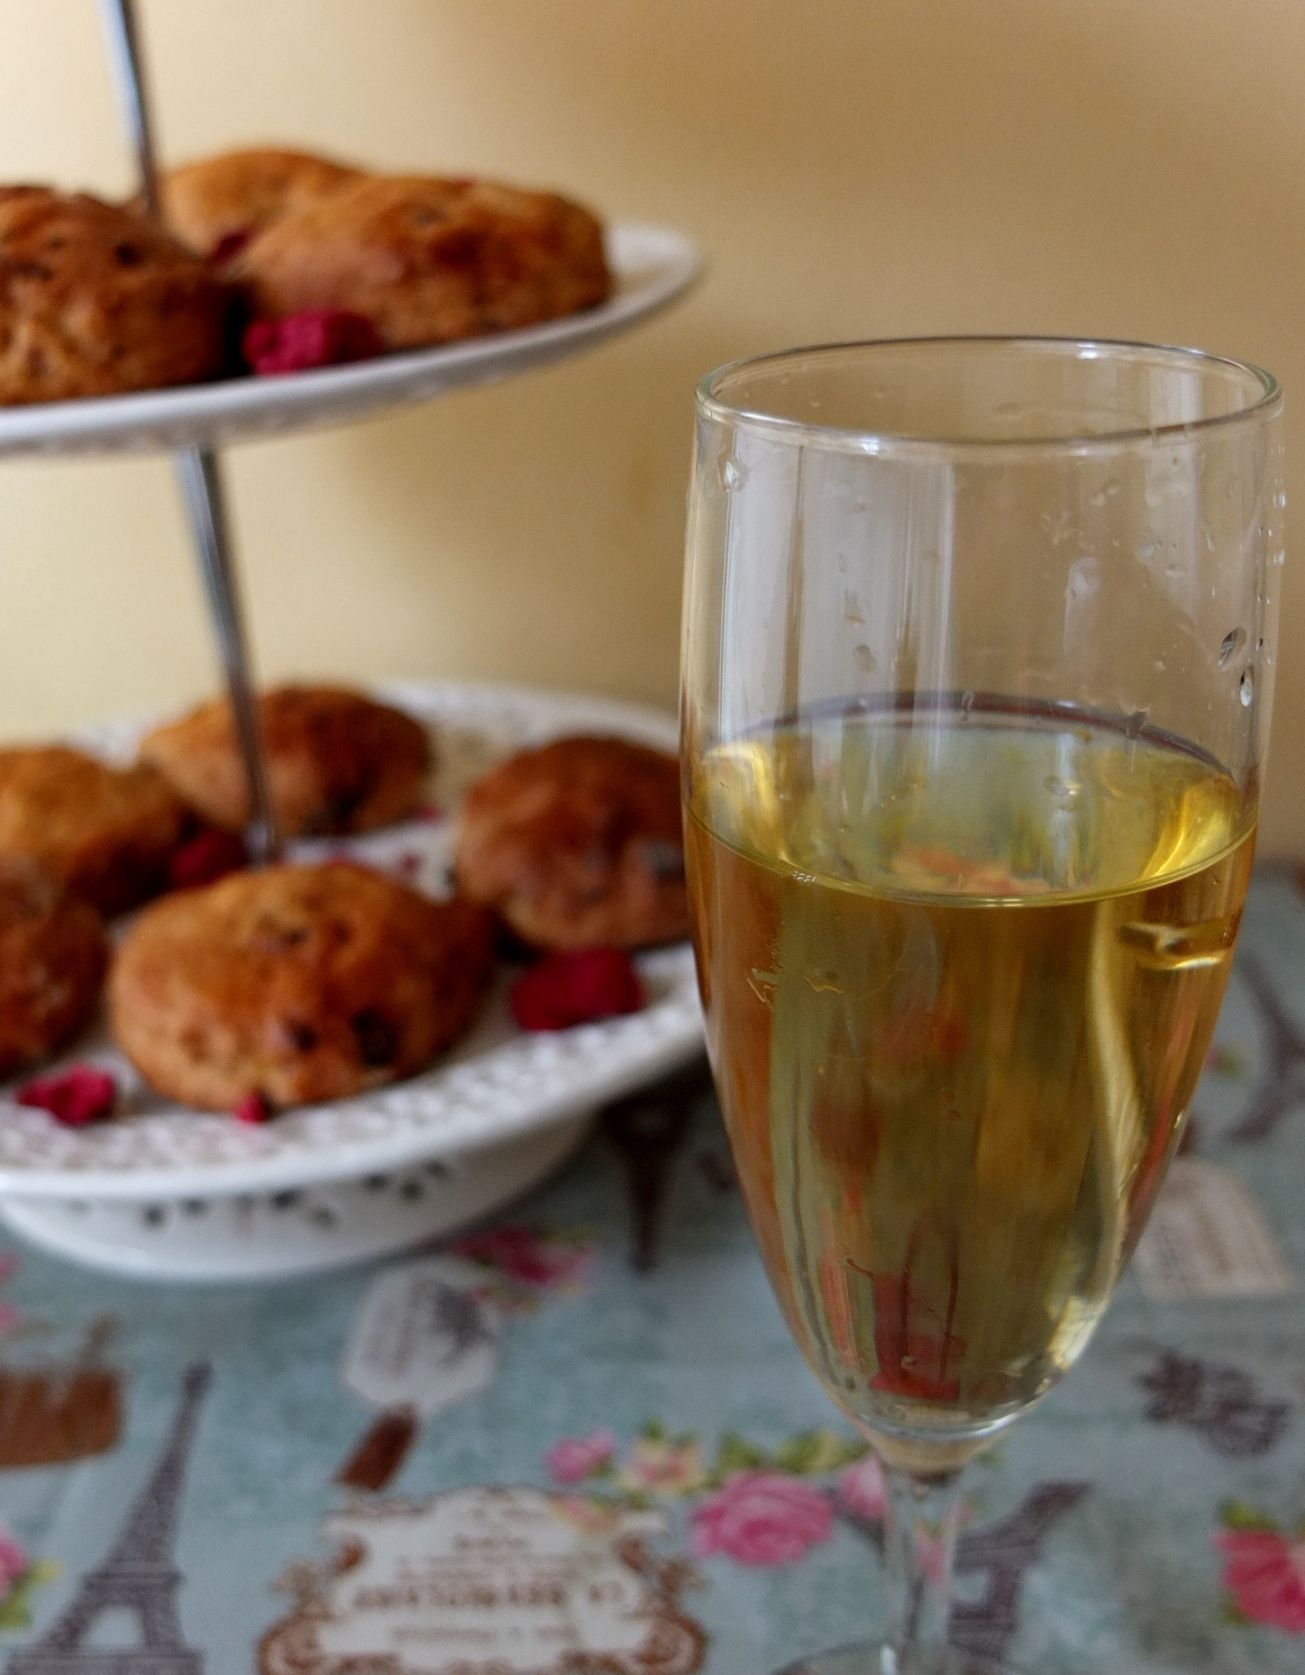 Cava and Ispahan scones